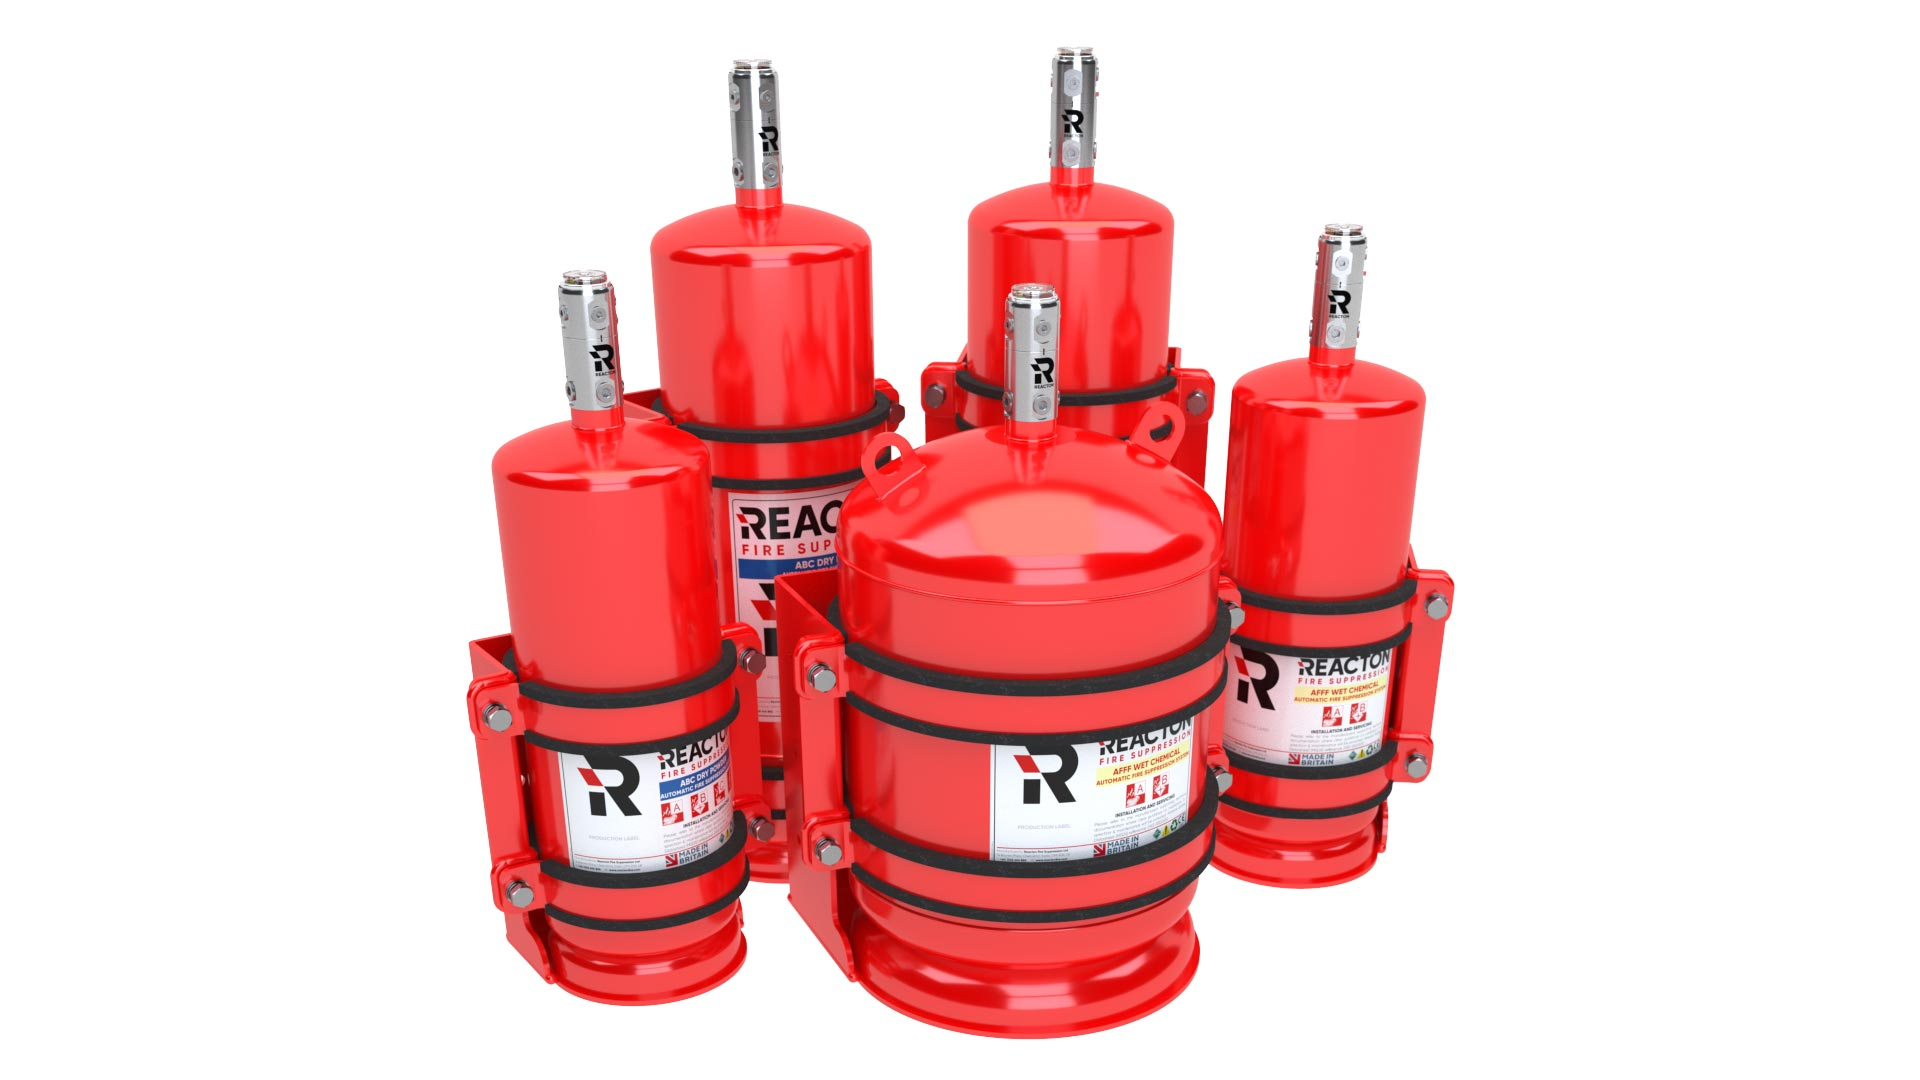 Reacton-Fire-Suppression-Accreditations